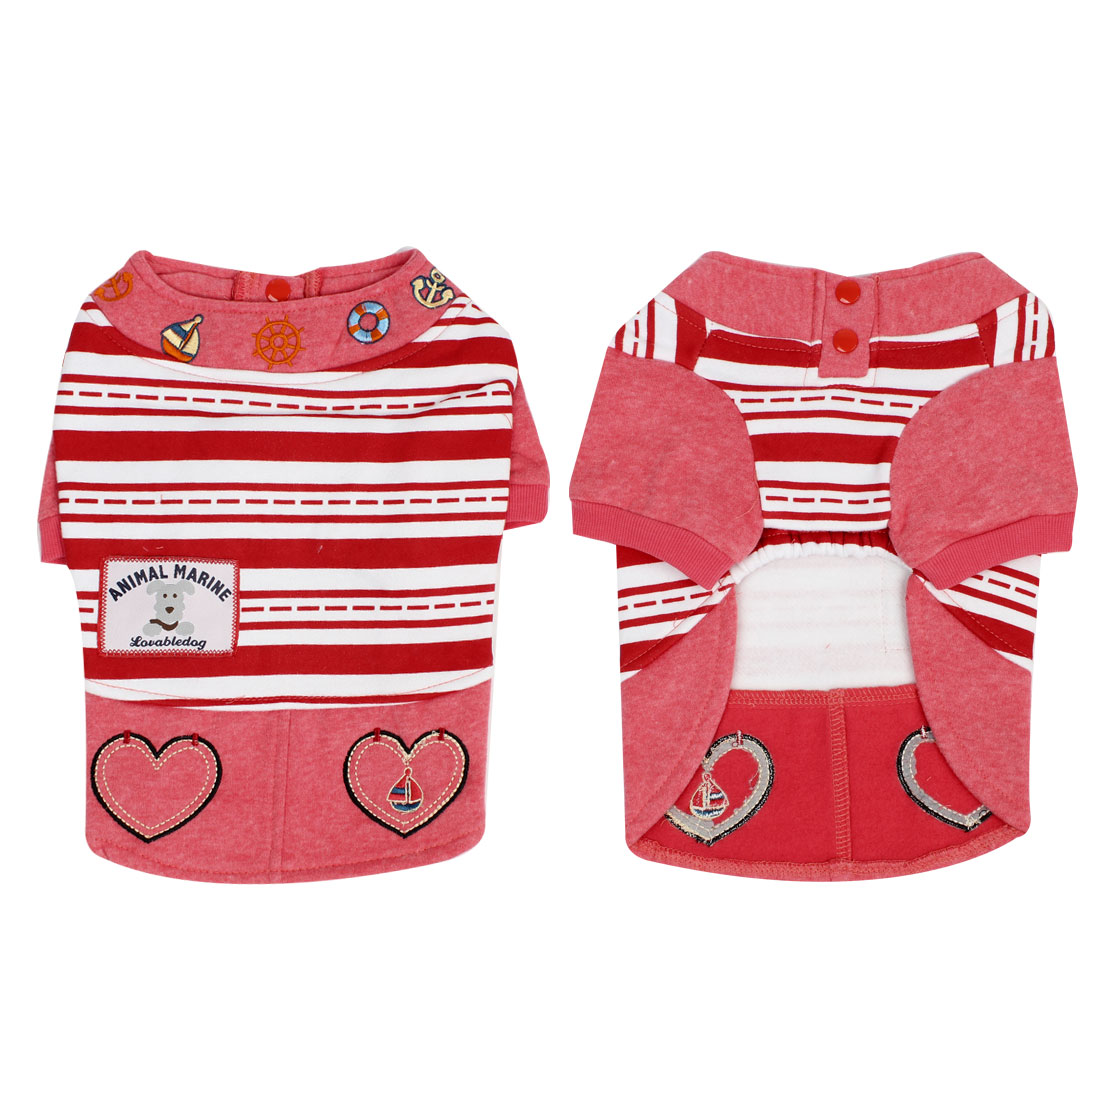 Winter Warm Stripe Print Apparel Clothing Pet Cat Dog Dress Pink XL